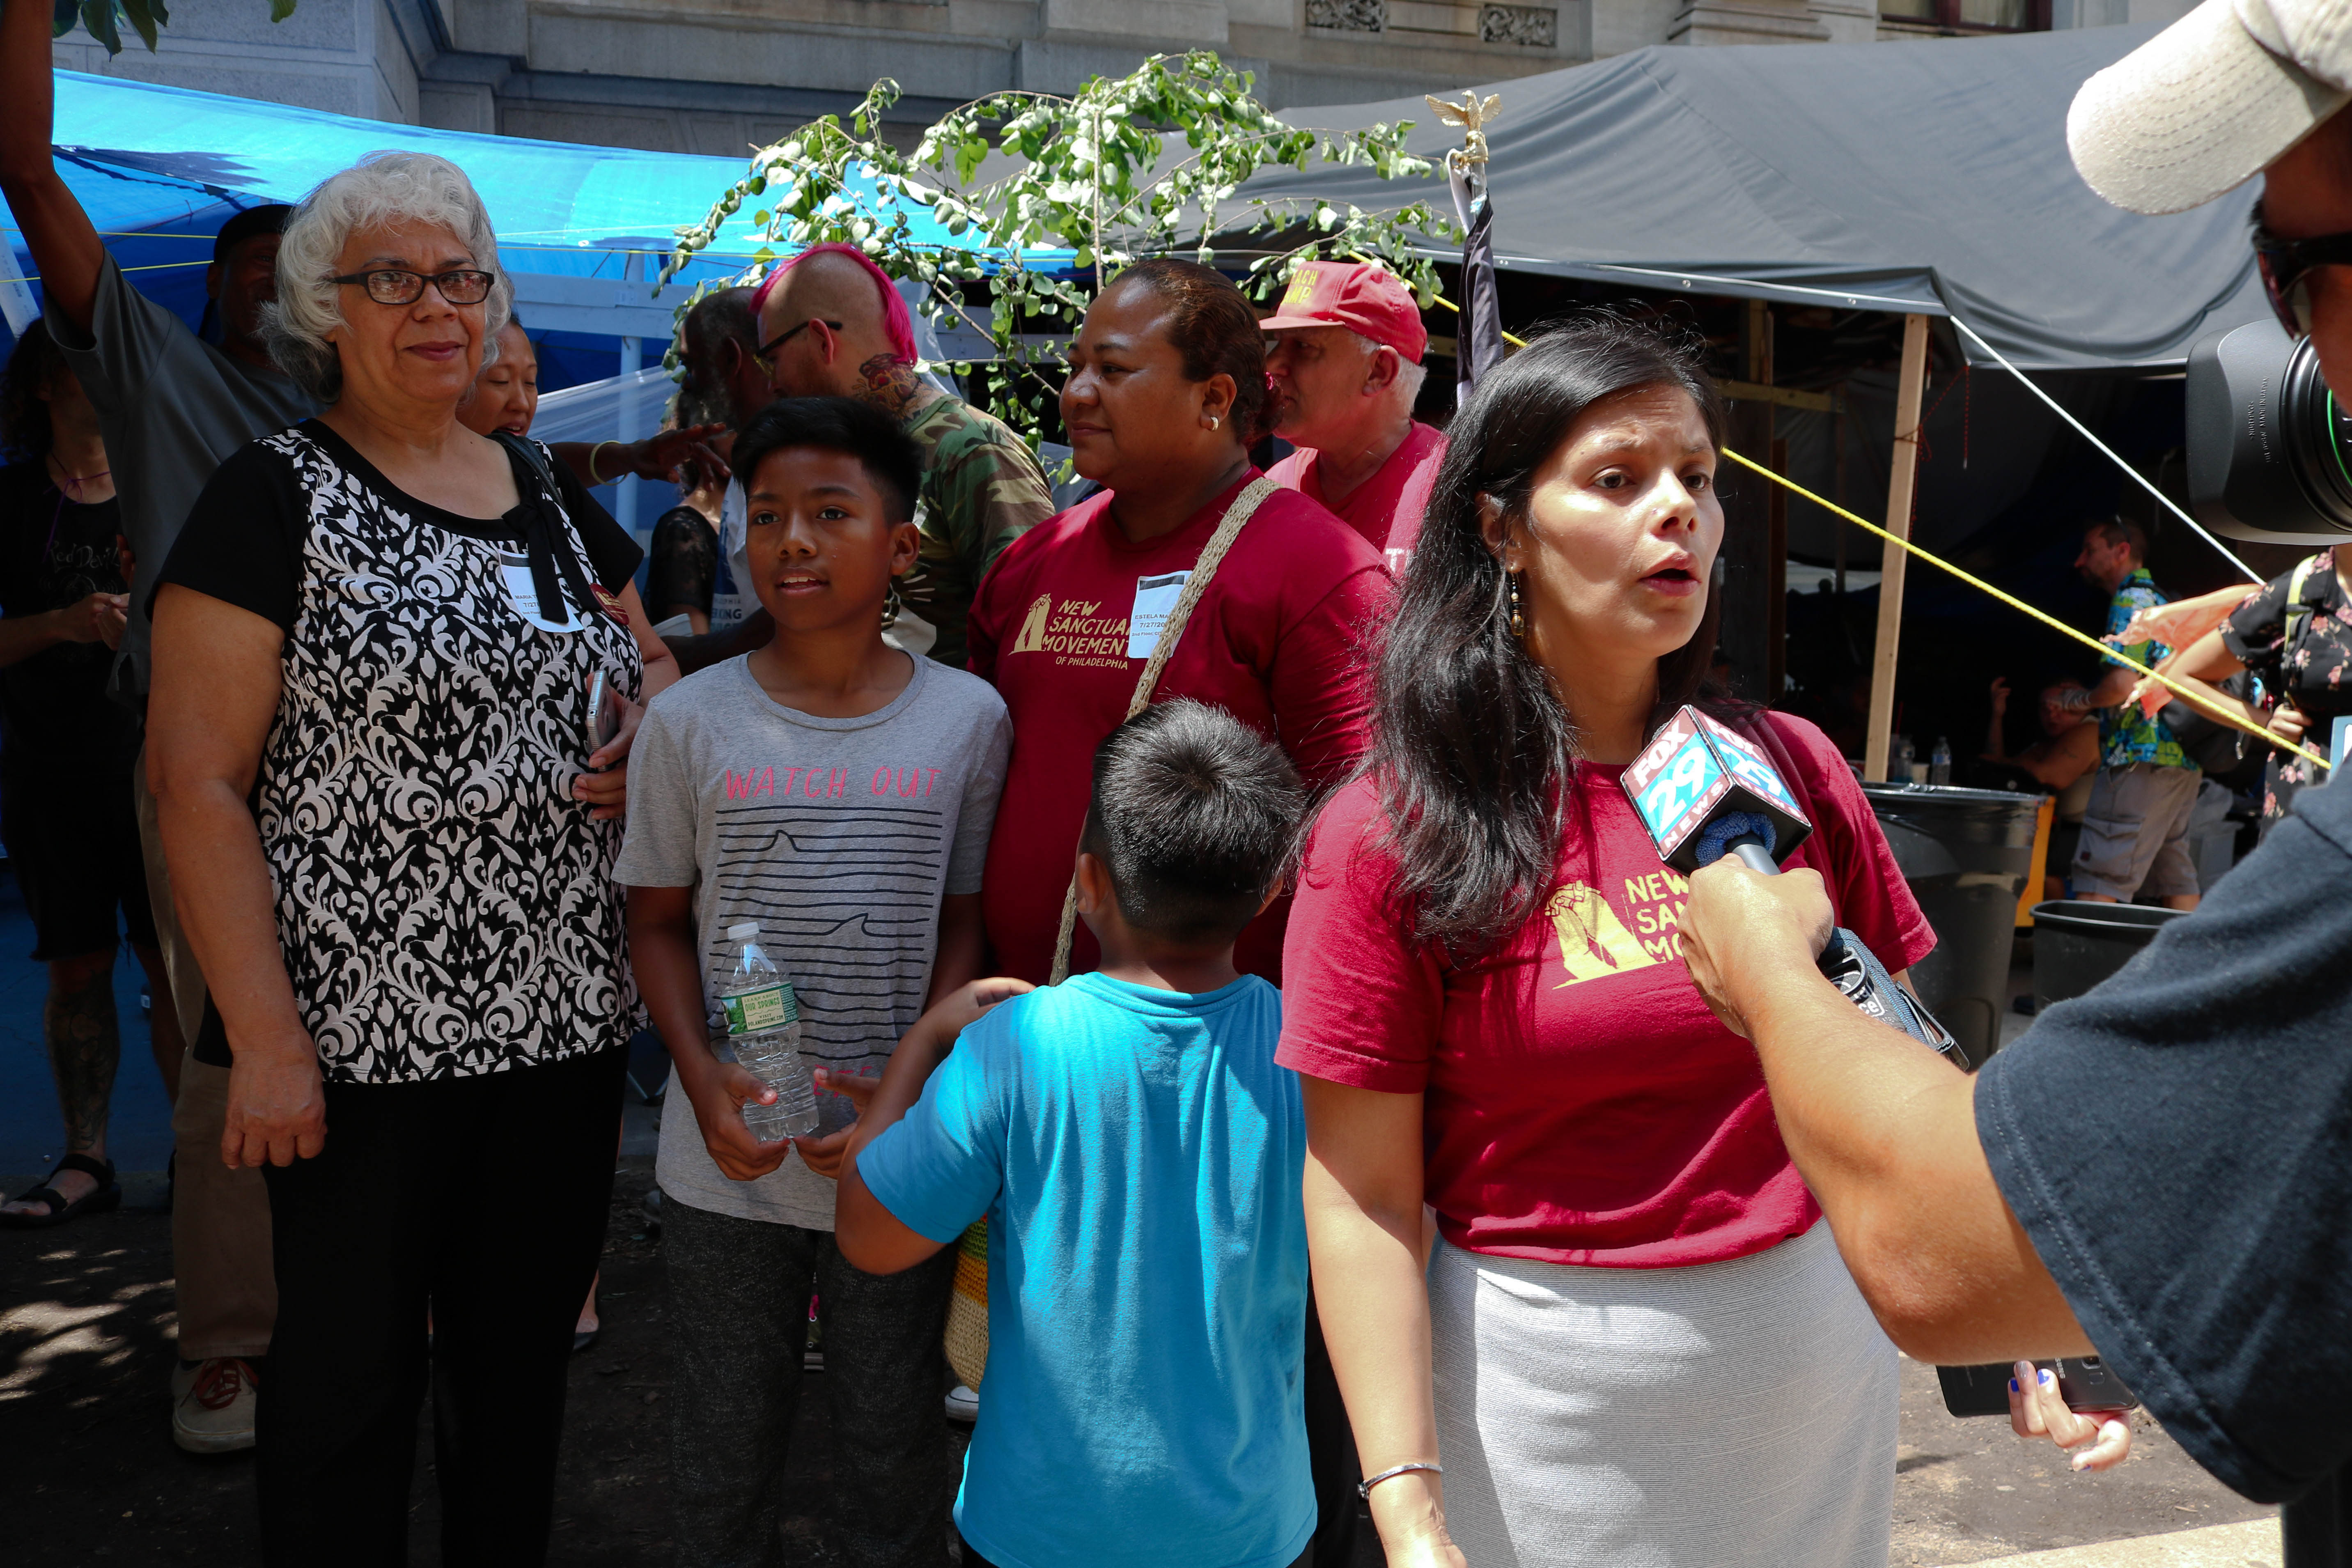 Blanca Pacheco, co-director of the Sanctuary Movement being interviewed by Fox 29 at the Occupy ICE encampment